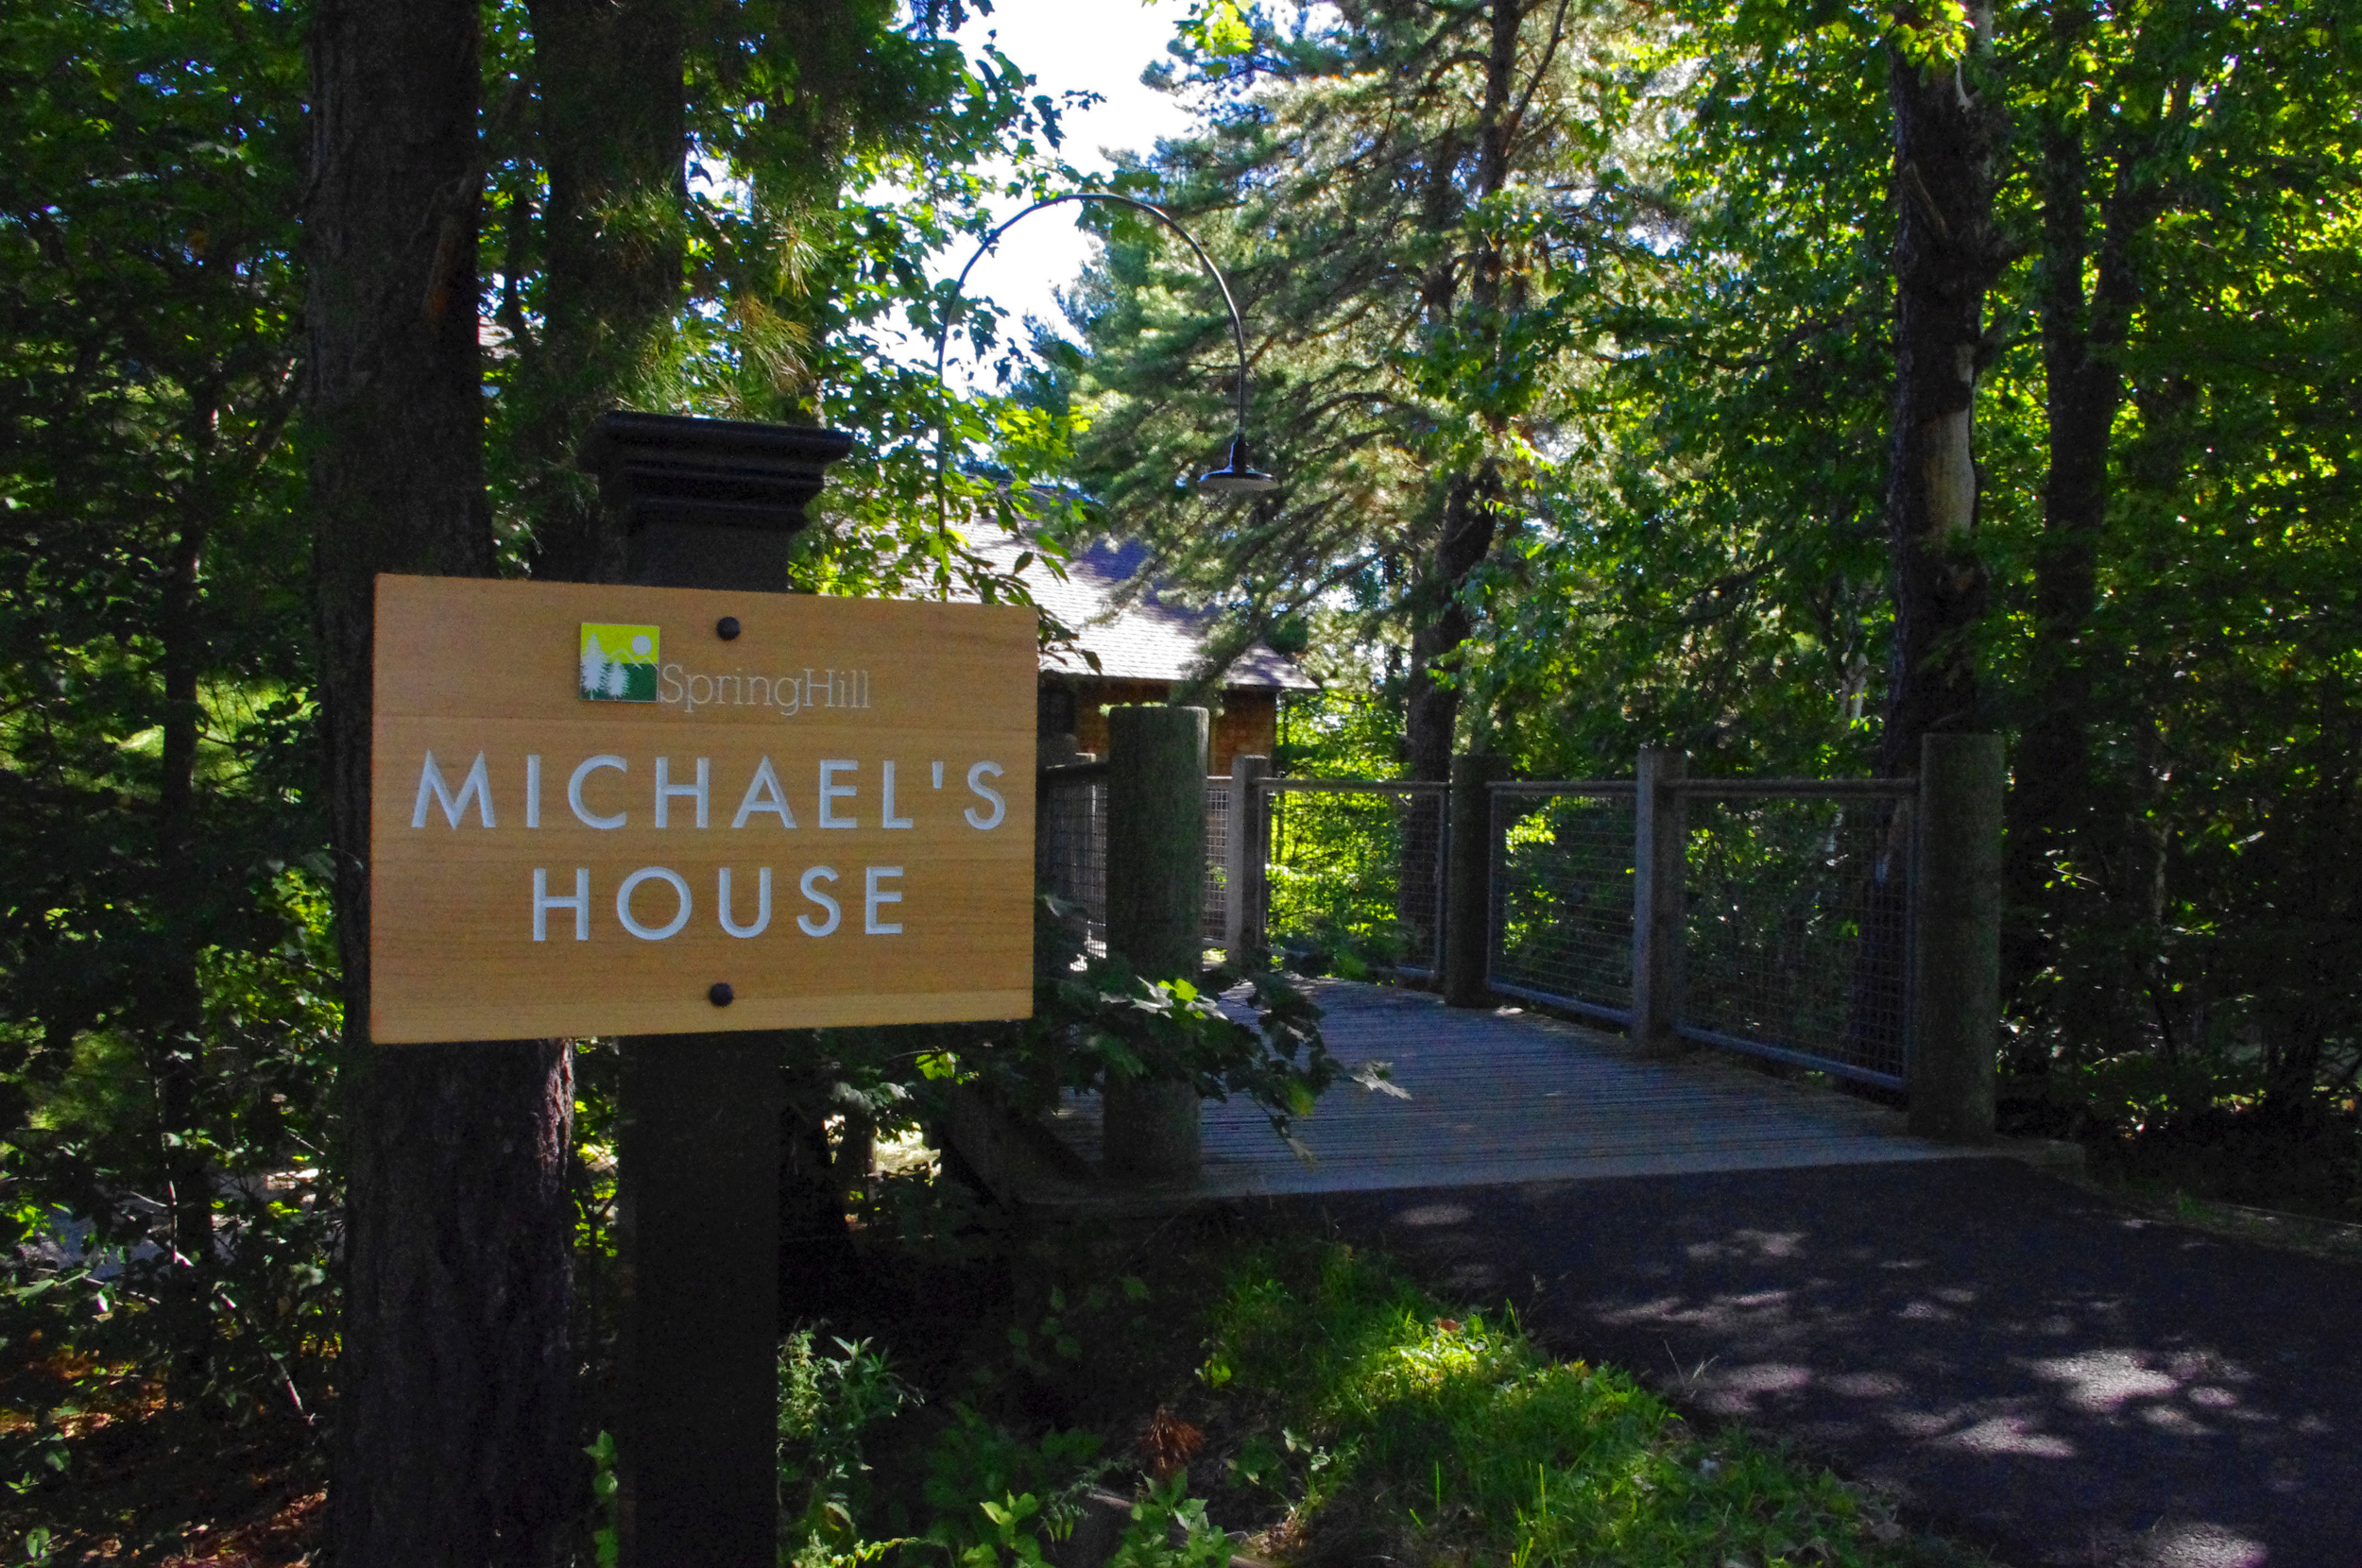 MICHAELS HOUSE 1 copy.jpg